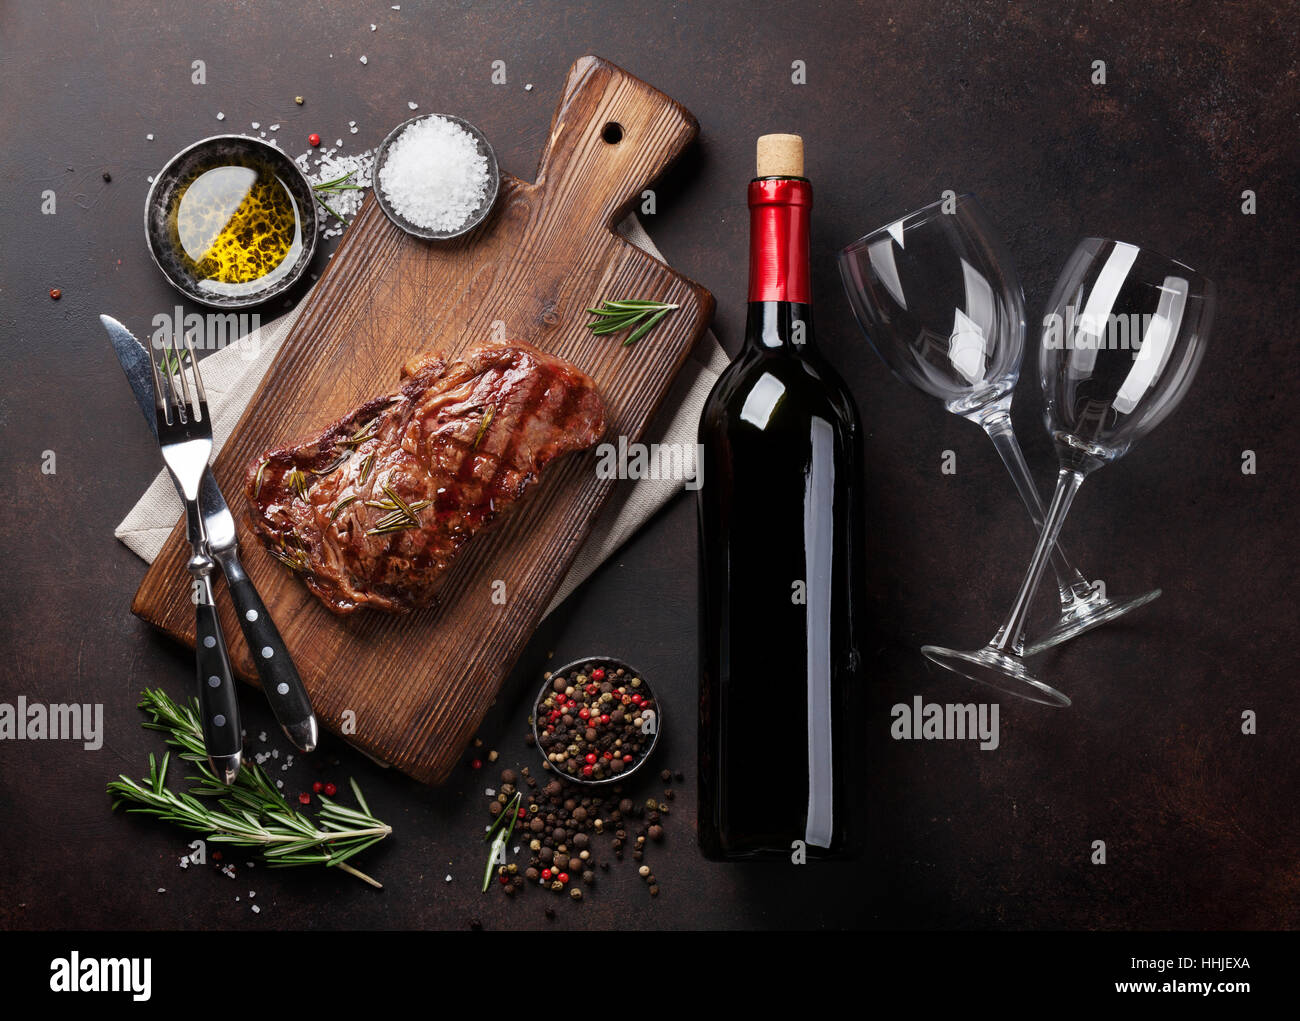 Grilled ribeye beef steak with red wine, herbs and spices. Top view - Stock Image